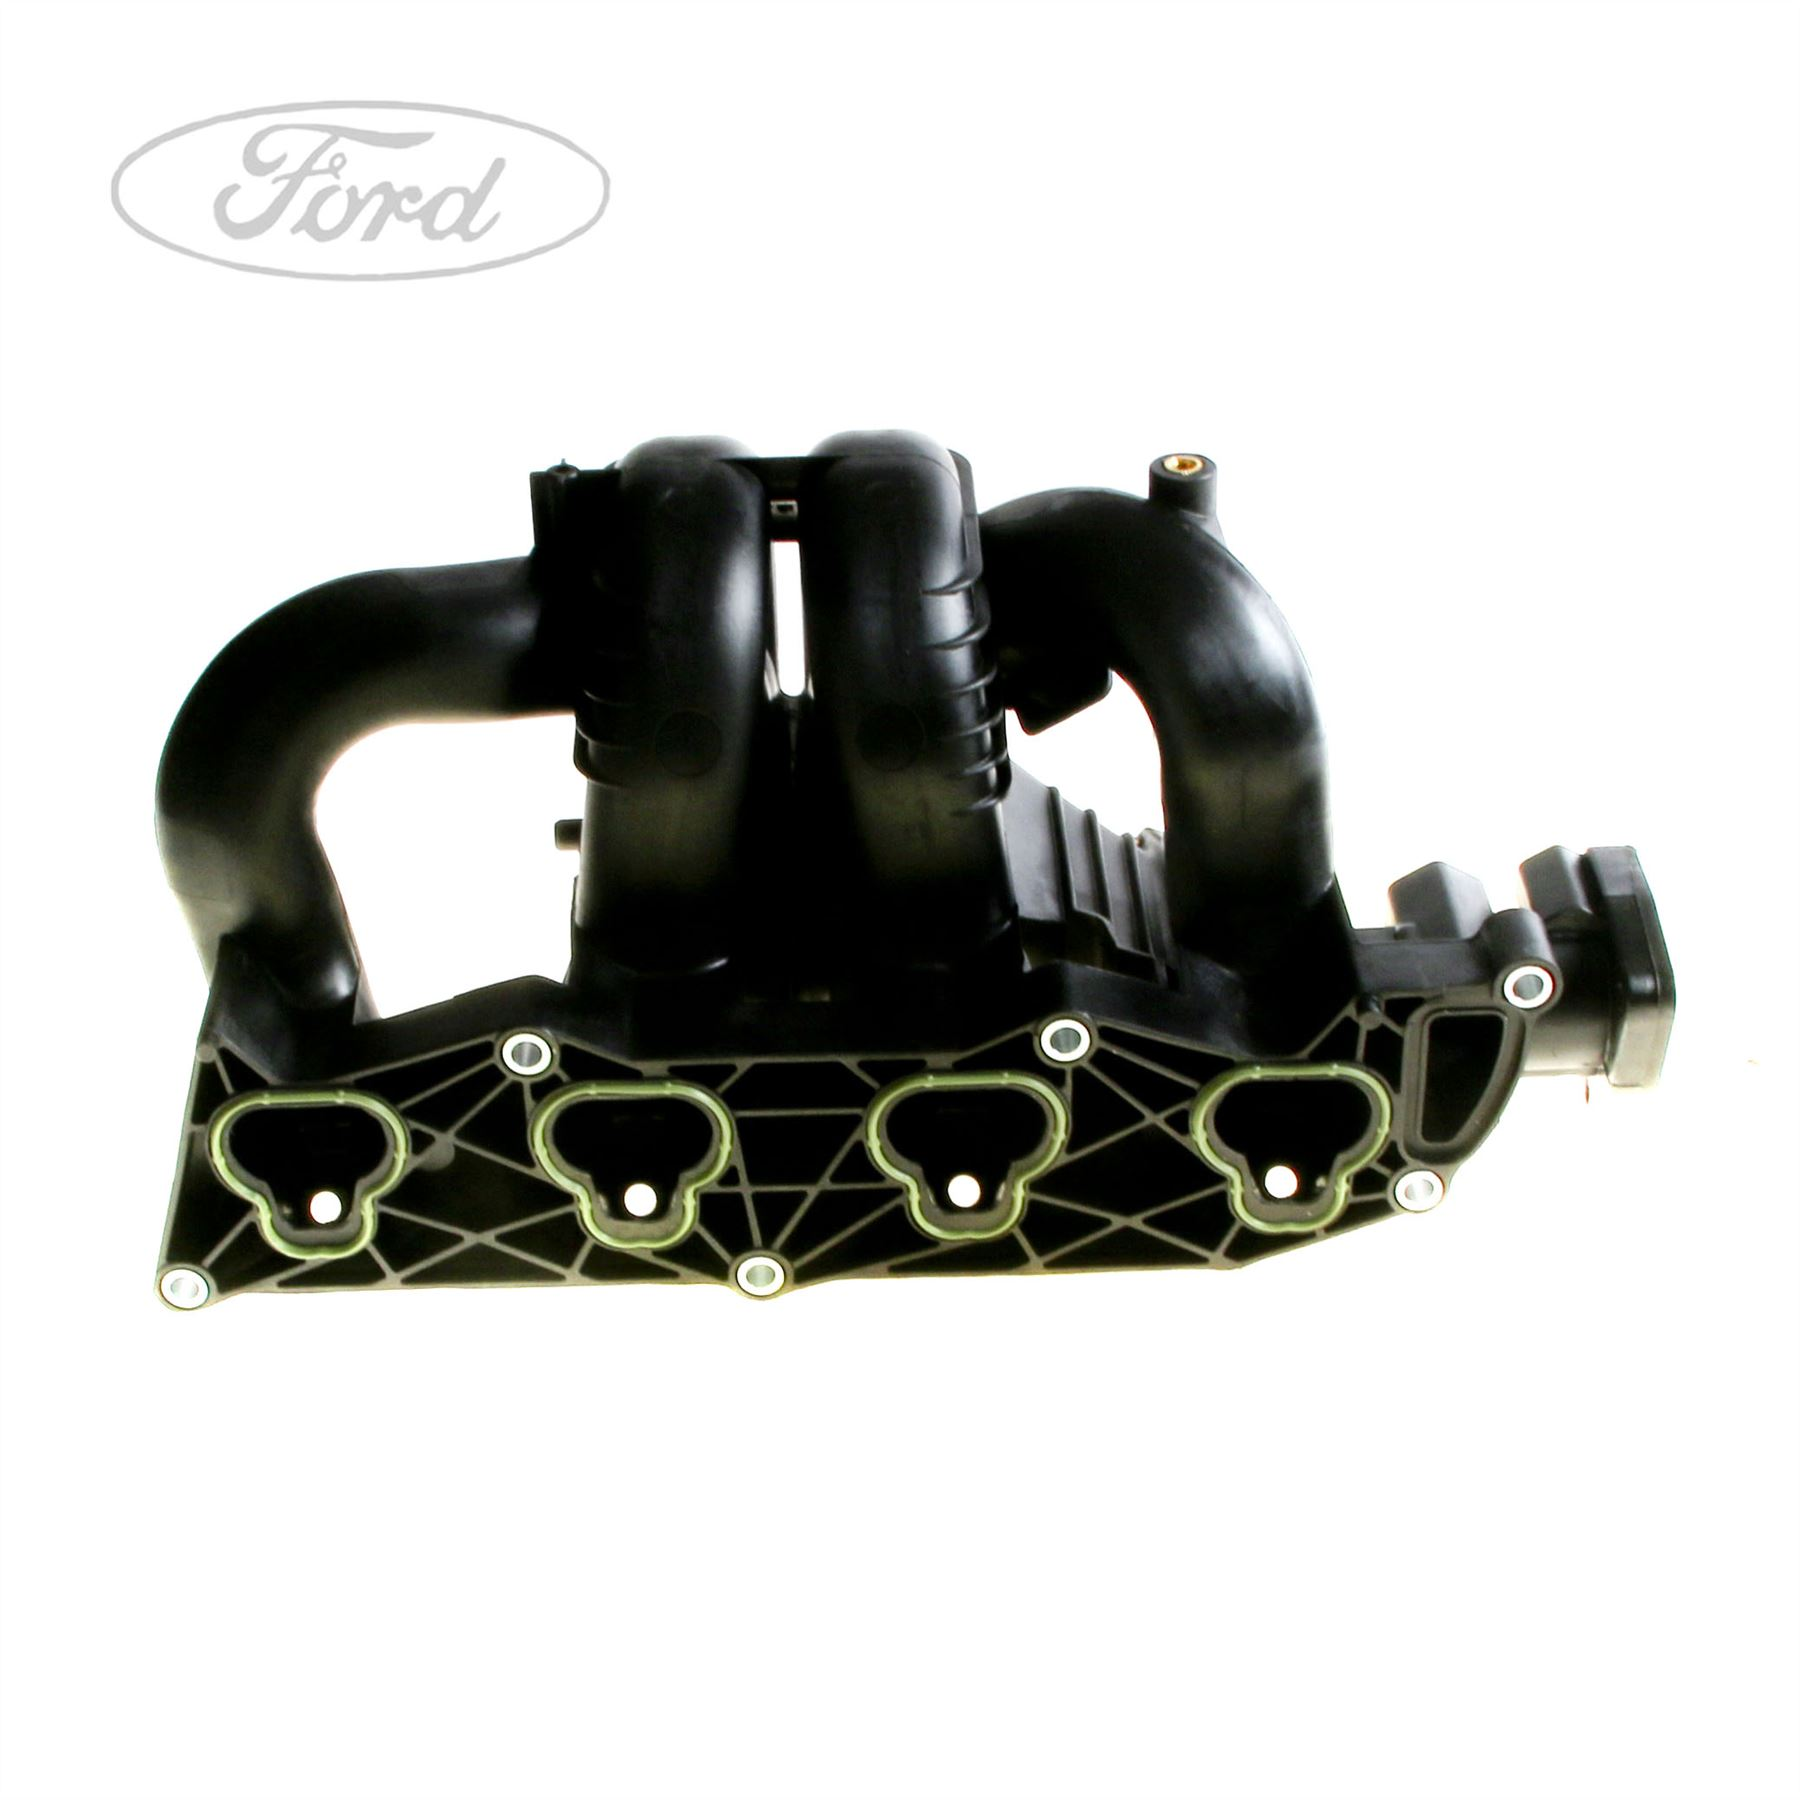 hight resolution of details about genuine ford scorpio transit mk6 2 3 fuel inlet manifold 145 bhp 1024327